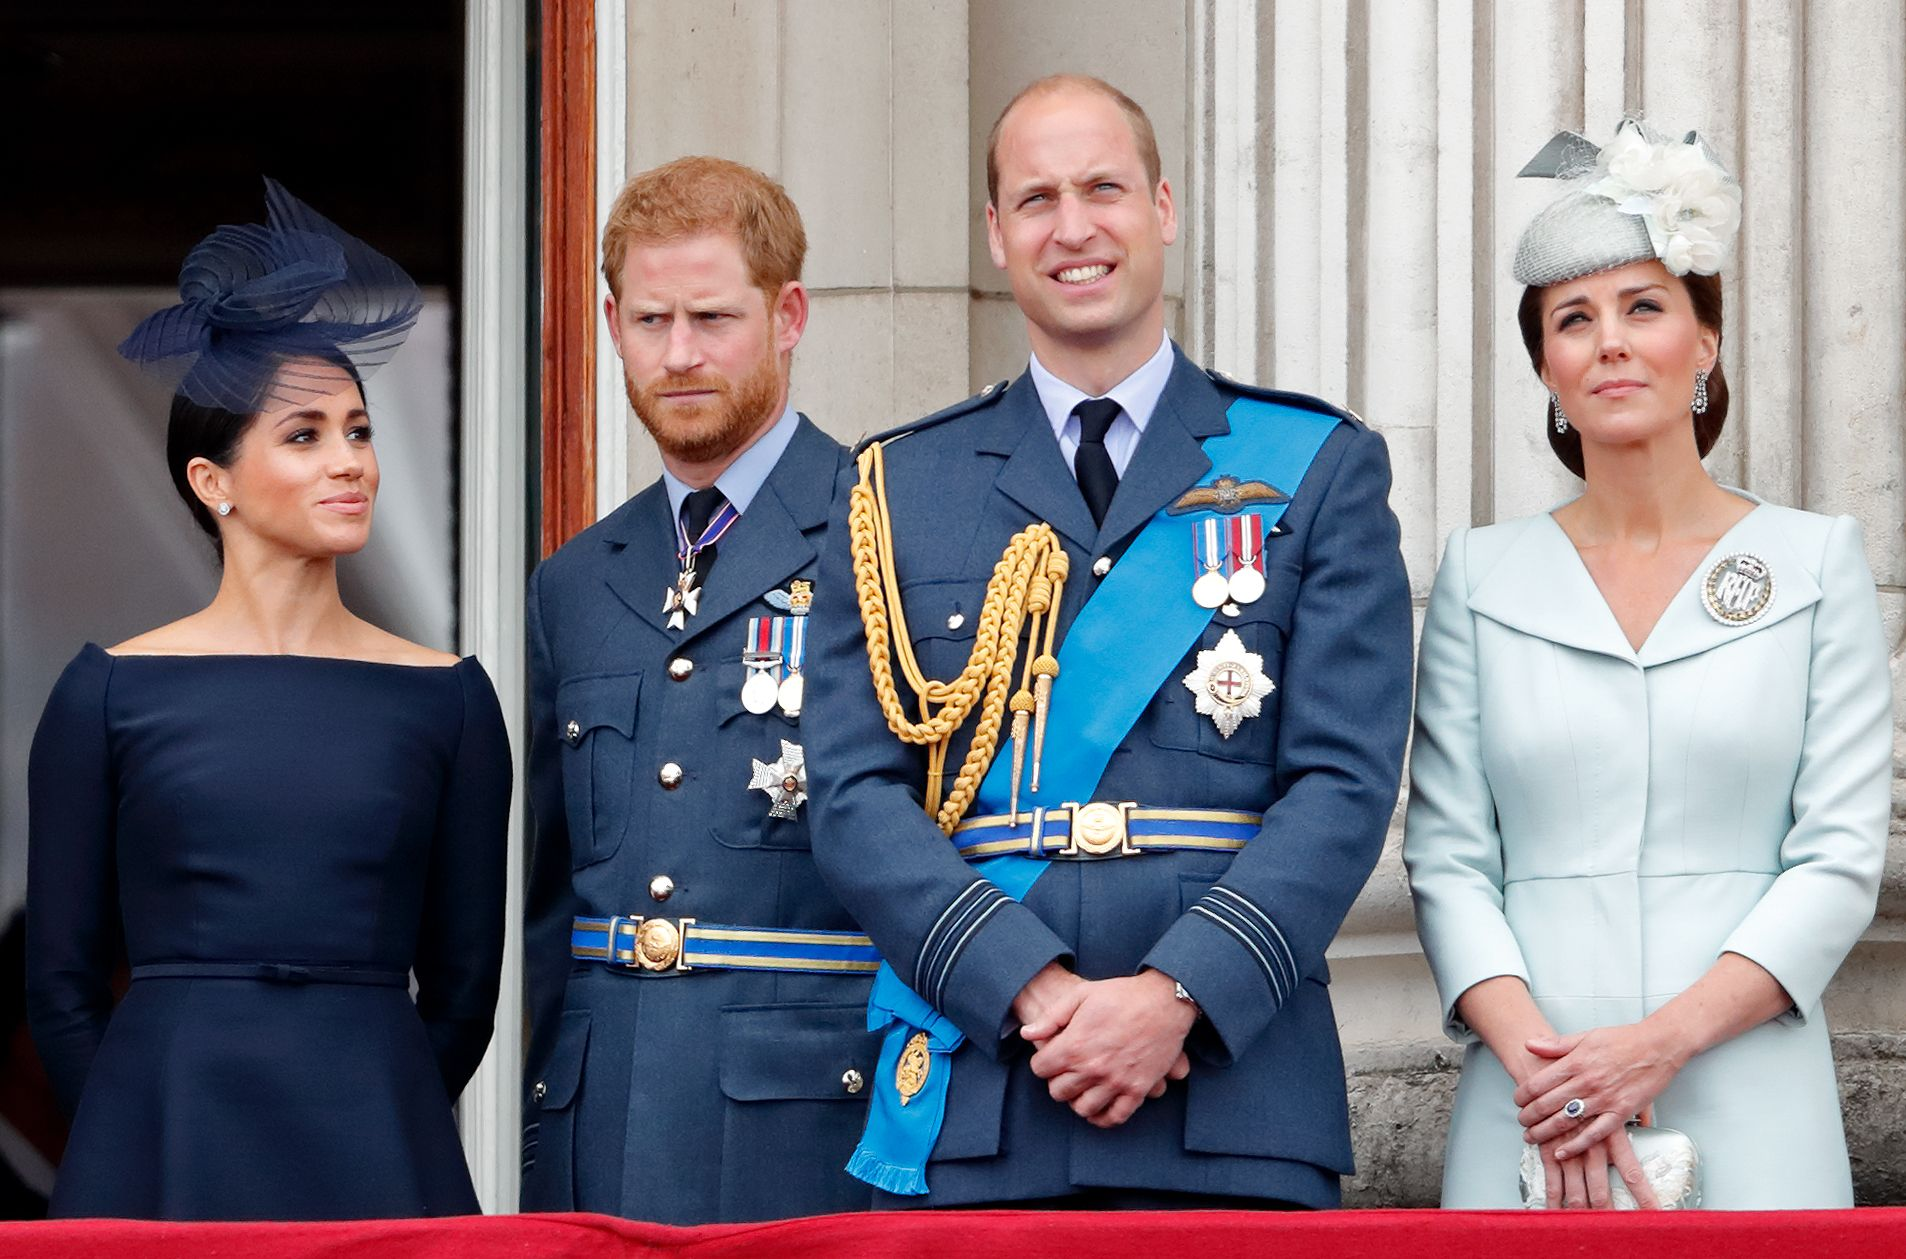 LONDON, UNITED KINGDOM - JULY 10: (EMBARGOED FOR PUBLICATION IN UK NEWSPAPERS UNTIL 24 HOURS AFTER CREATE DATE AND TIME) Meghan, Duchess of Sussex, Prince Harry, Duke of Sussex, Prince William, Duke of Cambridge and Catherine, Duchess of Cambridge watch a flypast to mark the centenary of the Royal Air Force from the balcony of Buckingham Palace on July 10, 2018 in London, England. The 100th birthday of the RAF, which was founded on on 1 April 1918, was marked with a centenary parade with the presentation of